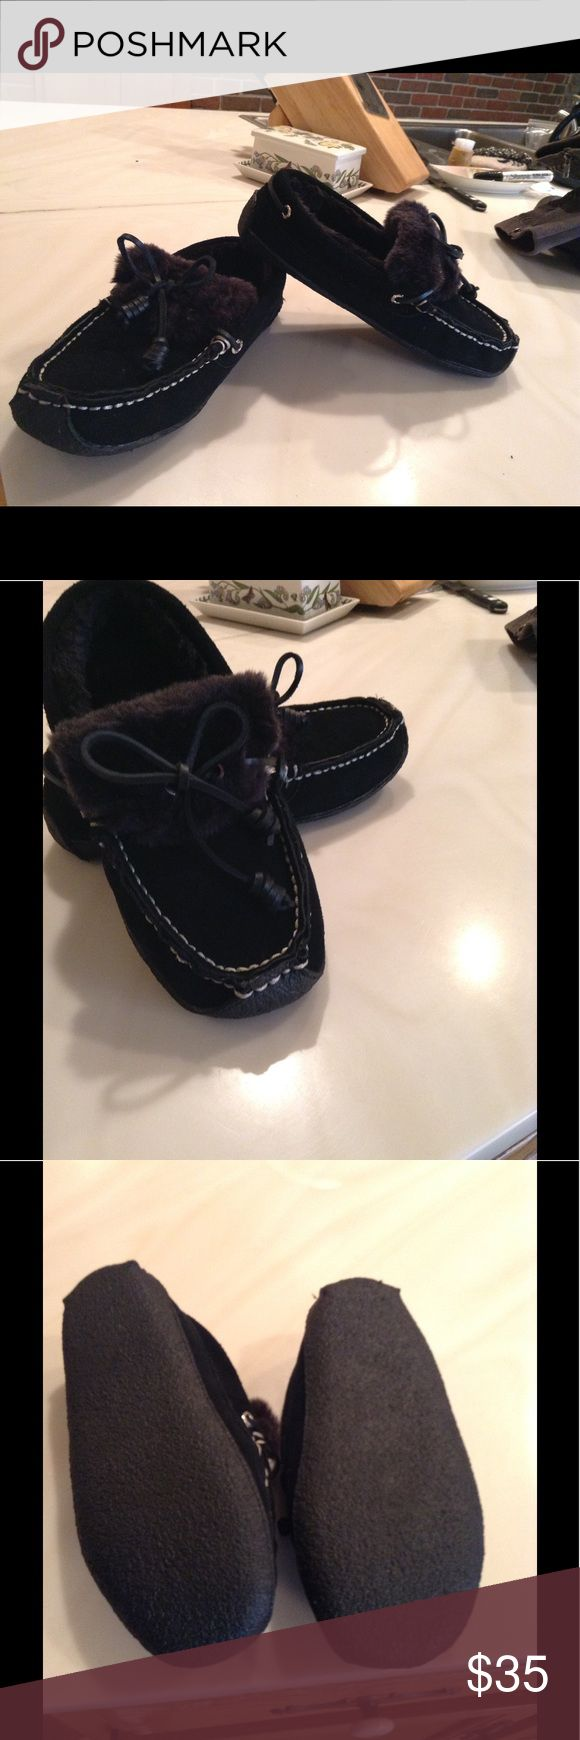 Sperry slippers Black leather faux shearling slippers , new without box Sperry Top-Sider Shoes Moccasins